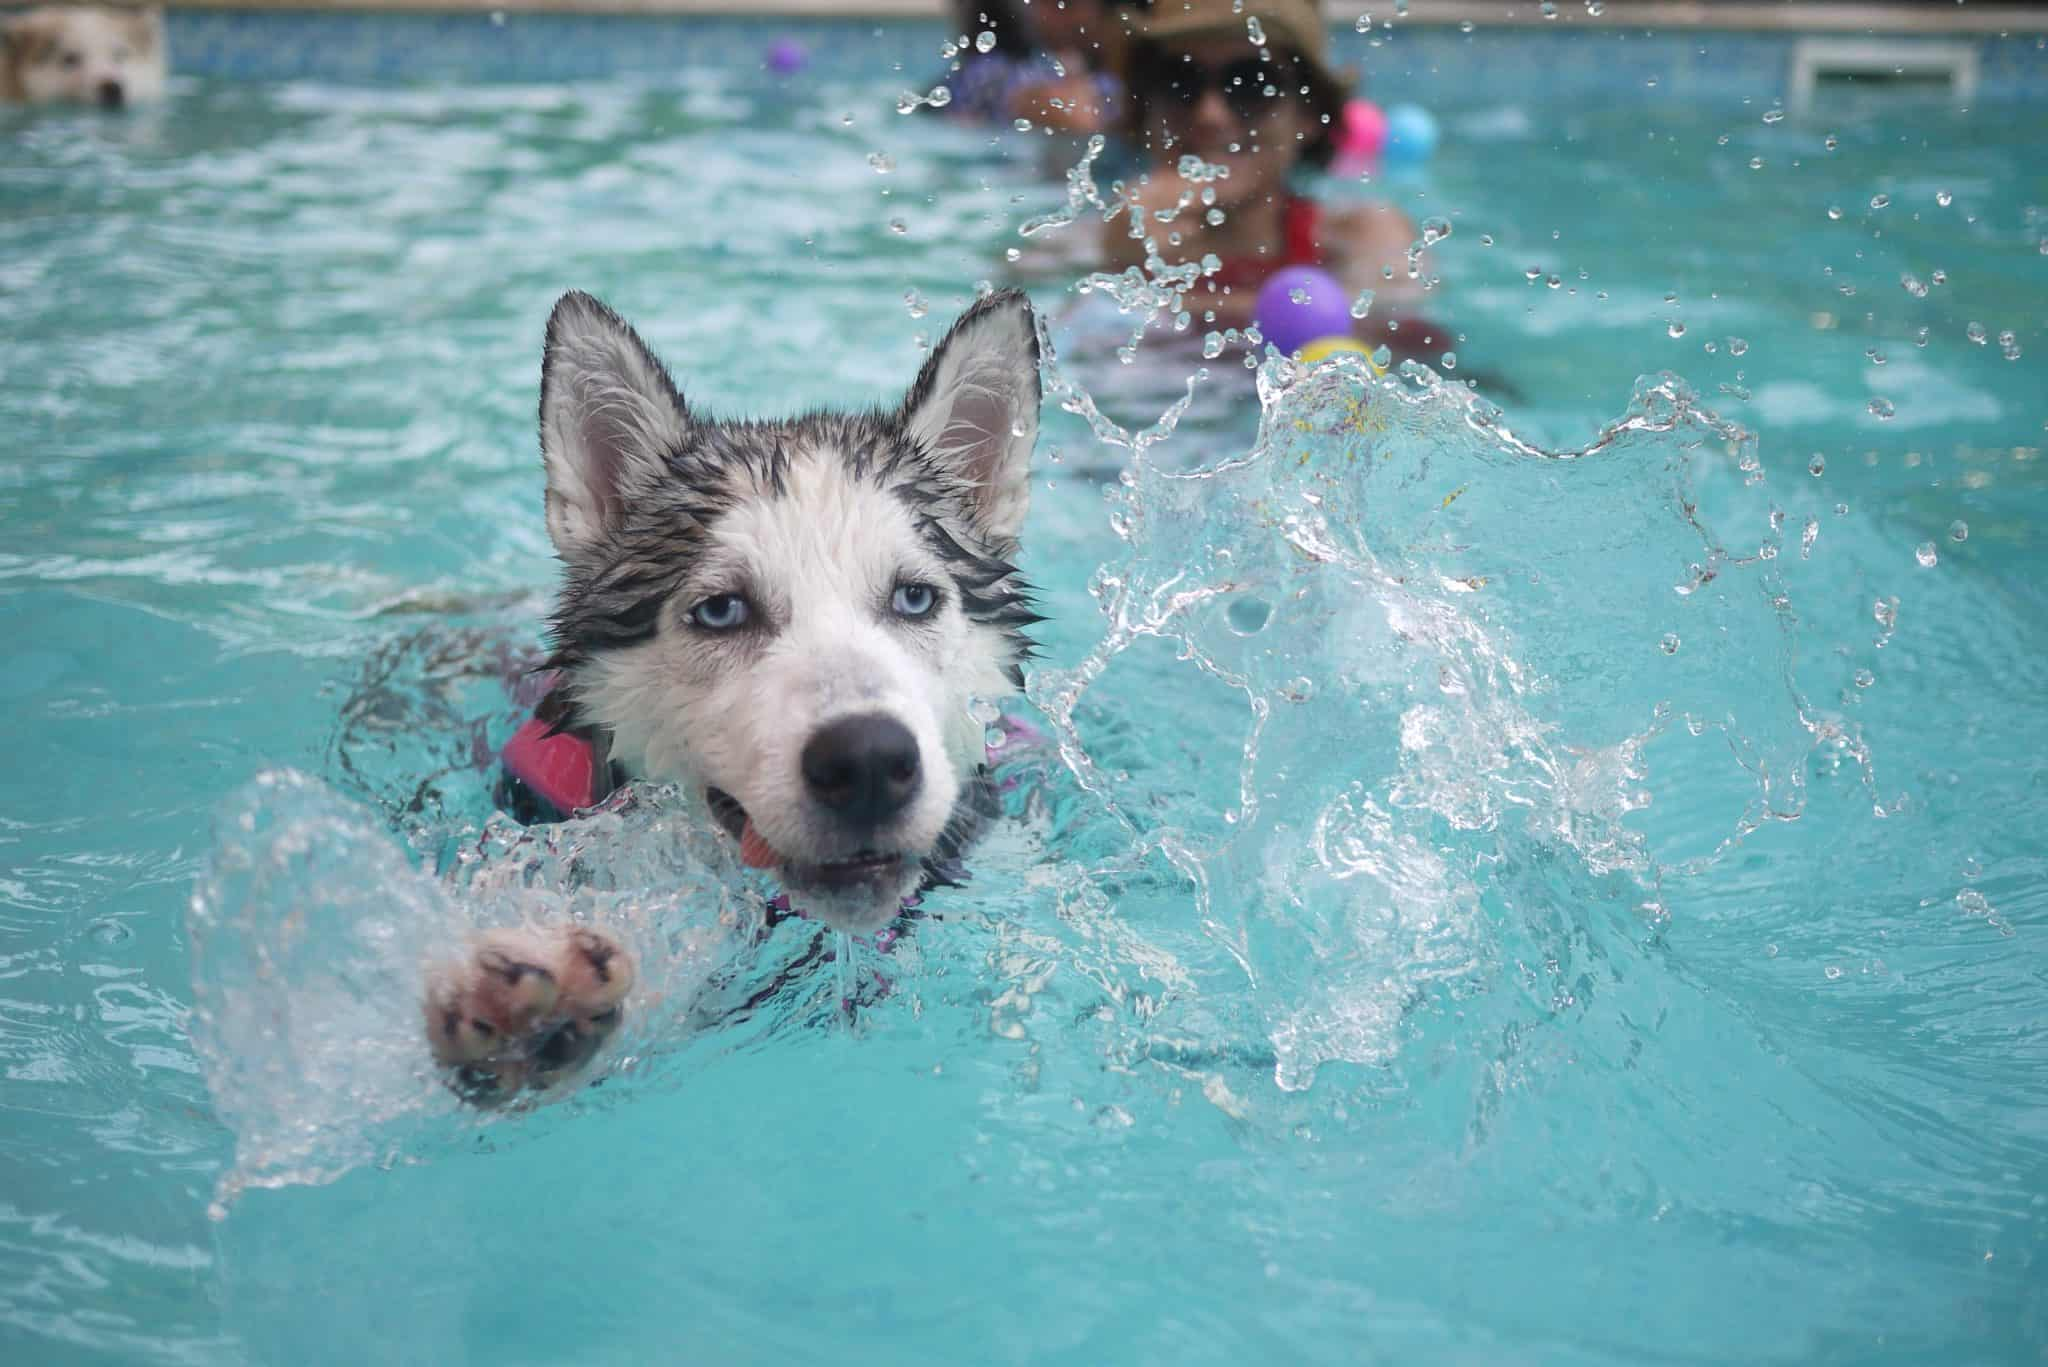 Husky swimming in a pool